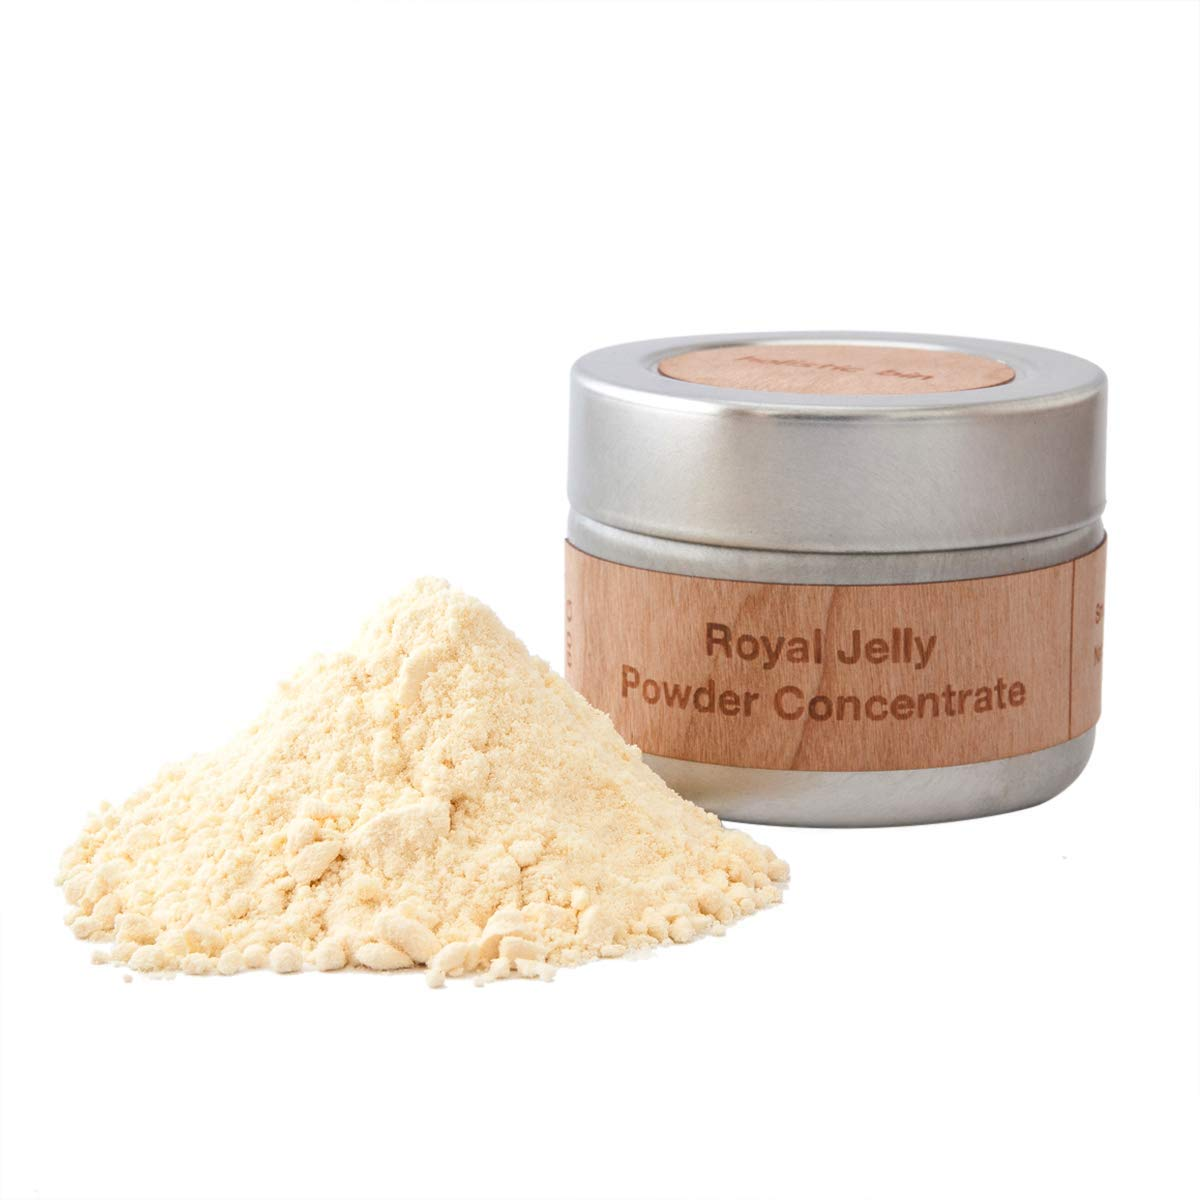 Royal Jelly Powder by Holistic Bin - 3X Concentration (60 Servings) Naturally Sourced from Tibetan Plains. Rich in Proteins (Collagen), Amino Acids, Probiotics, Natural Nootropic